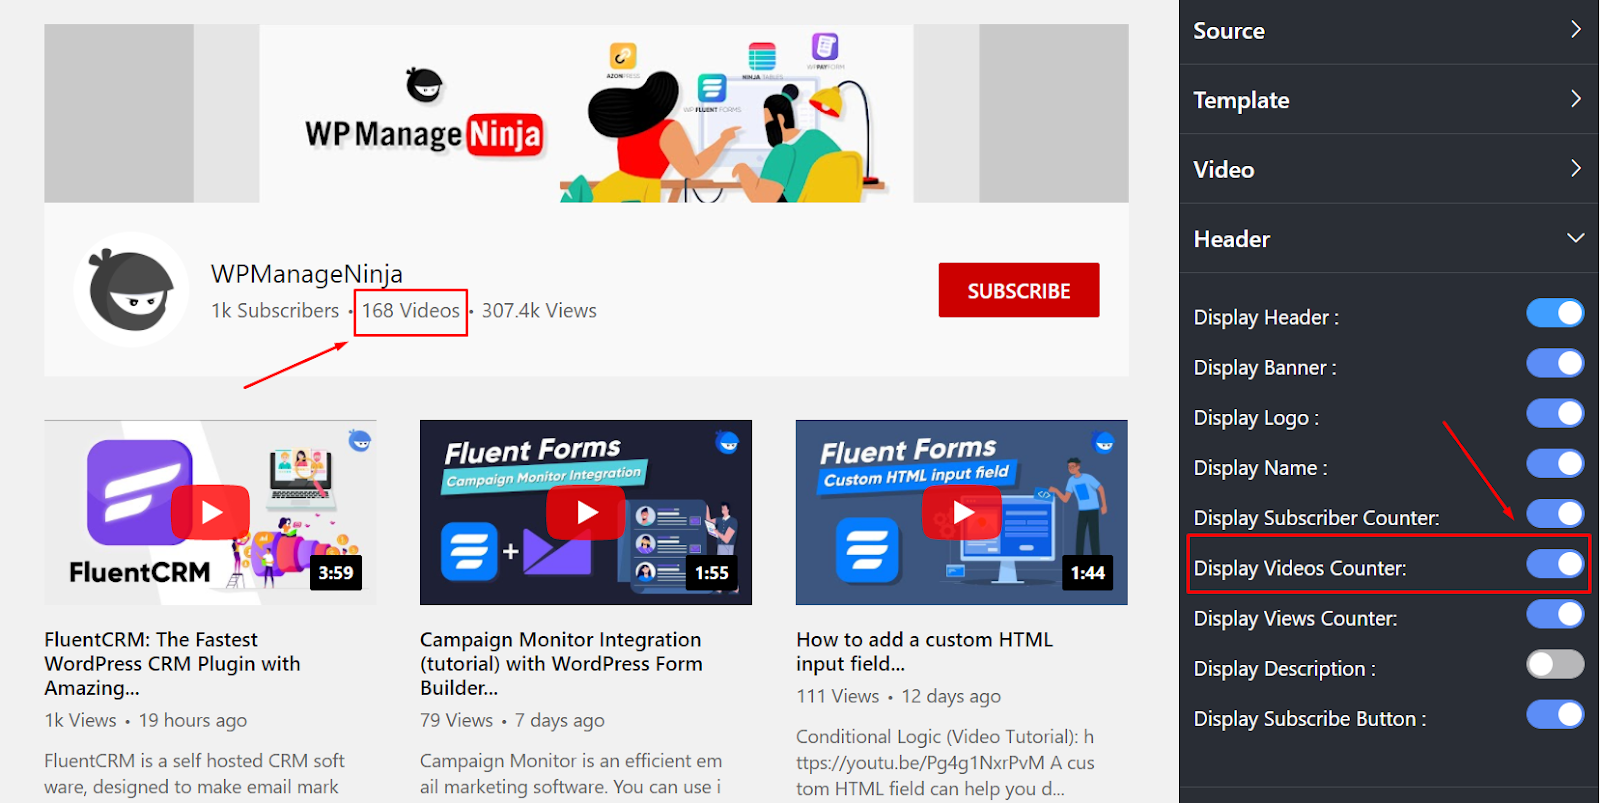 Display videos counter